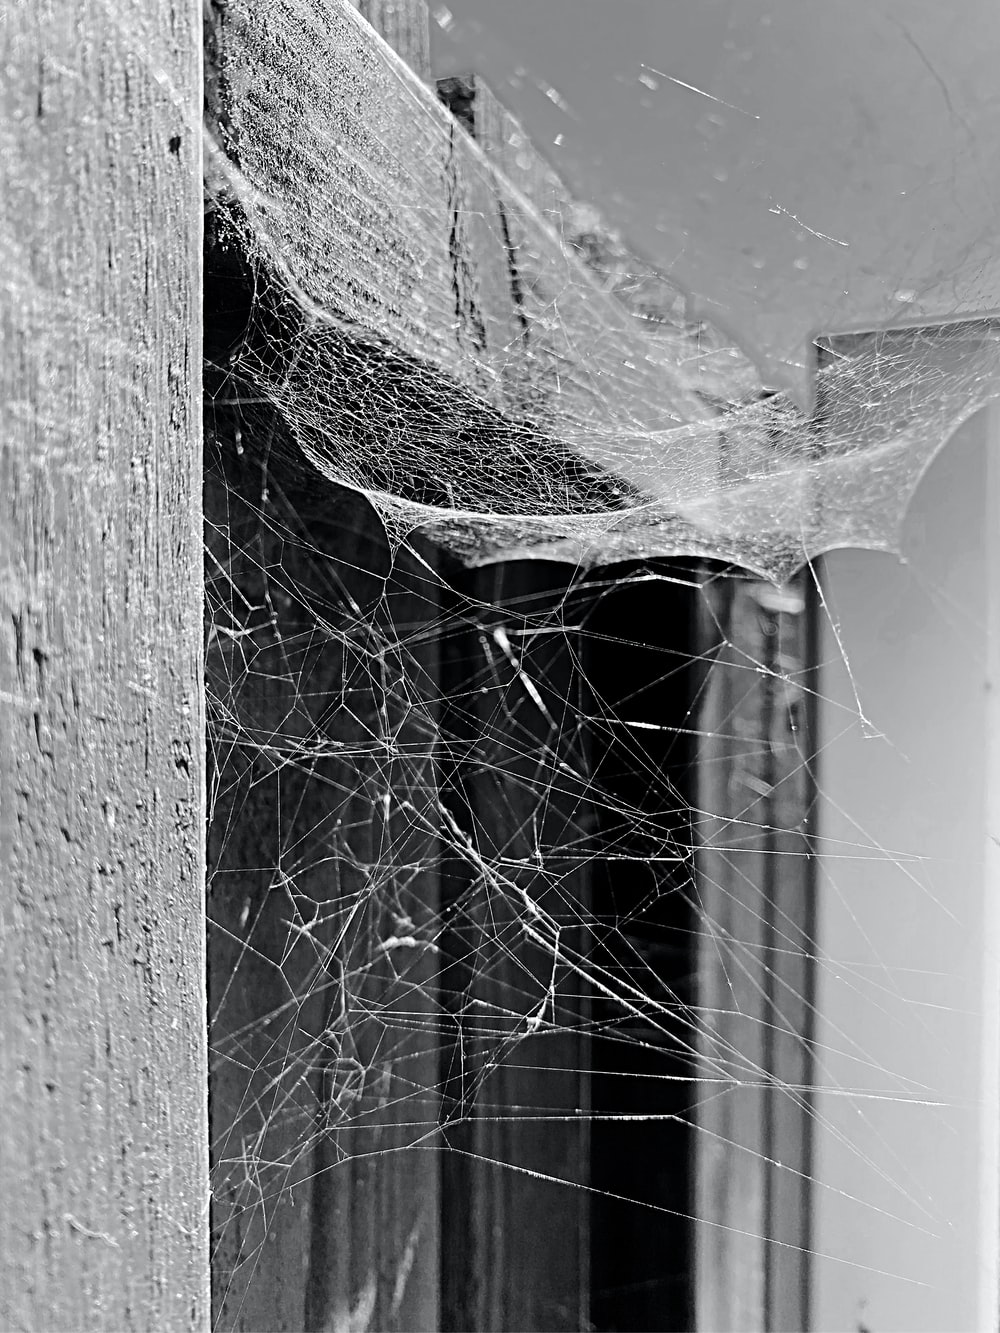 grayscale photo of spider web